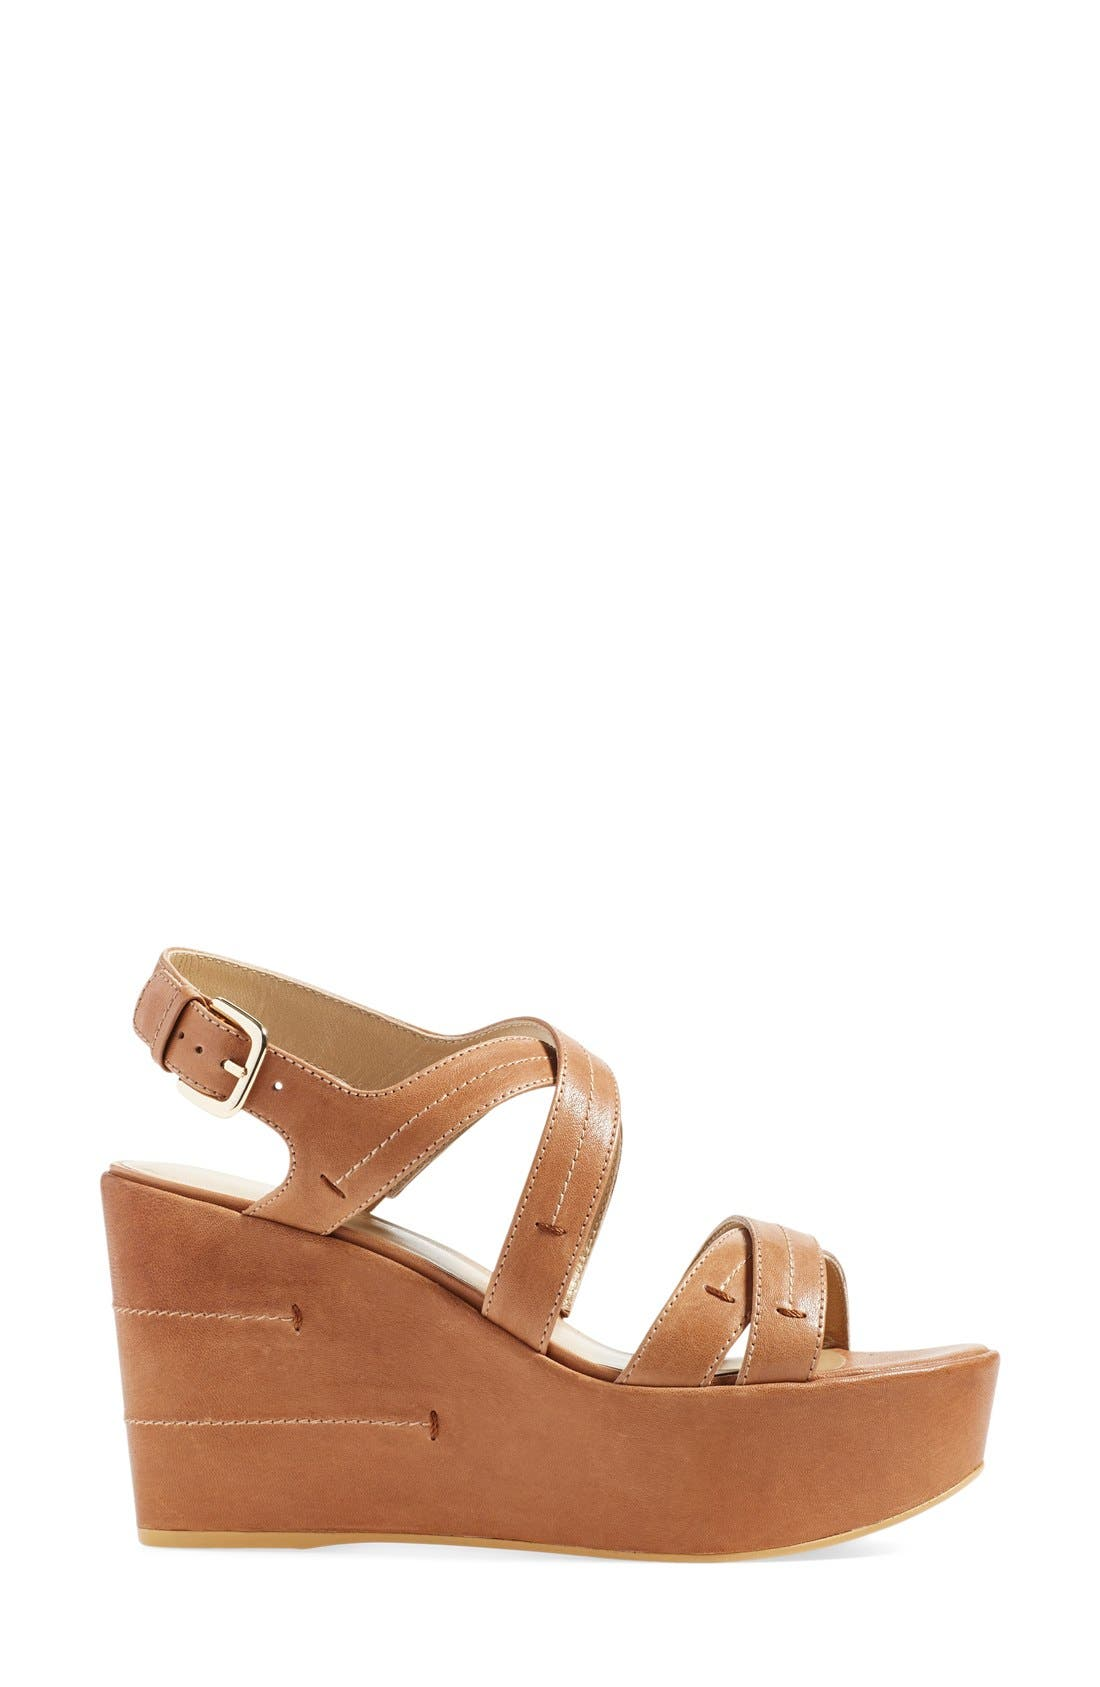 Alternate Image 4  - Stuart Weitzman 'Doublexing' Wedge Sandal (Women)